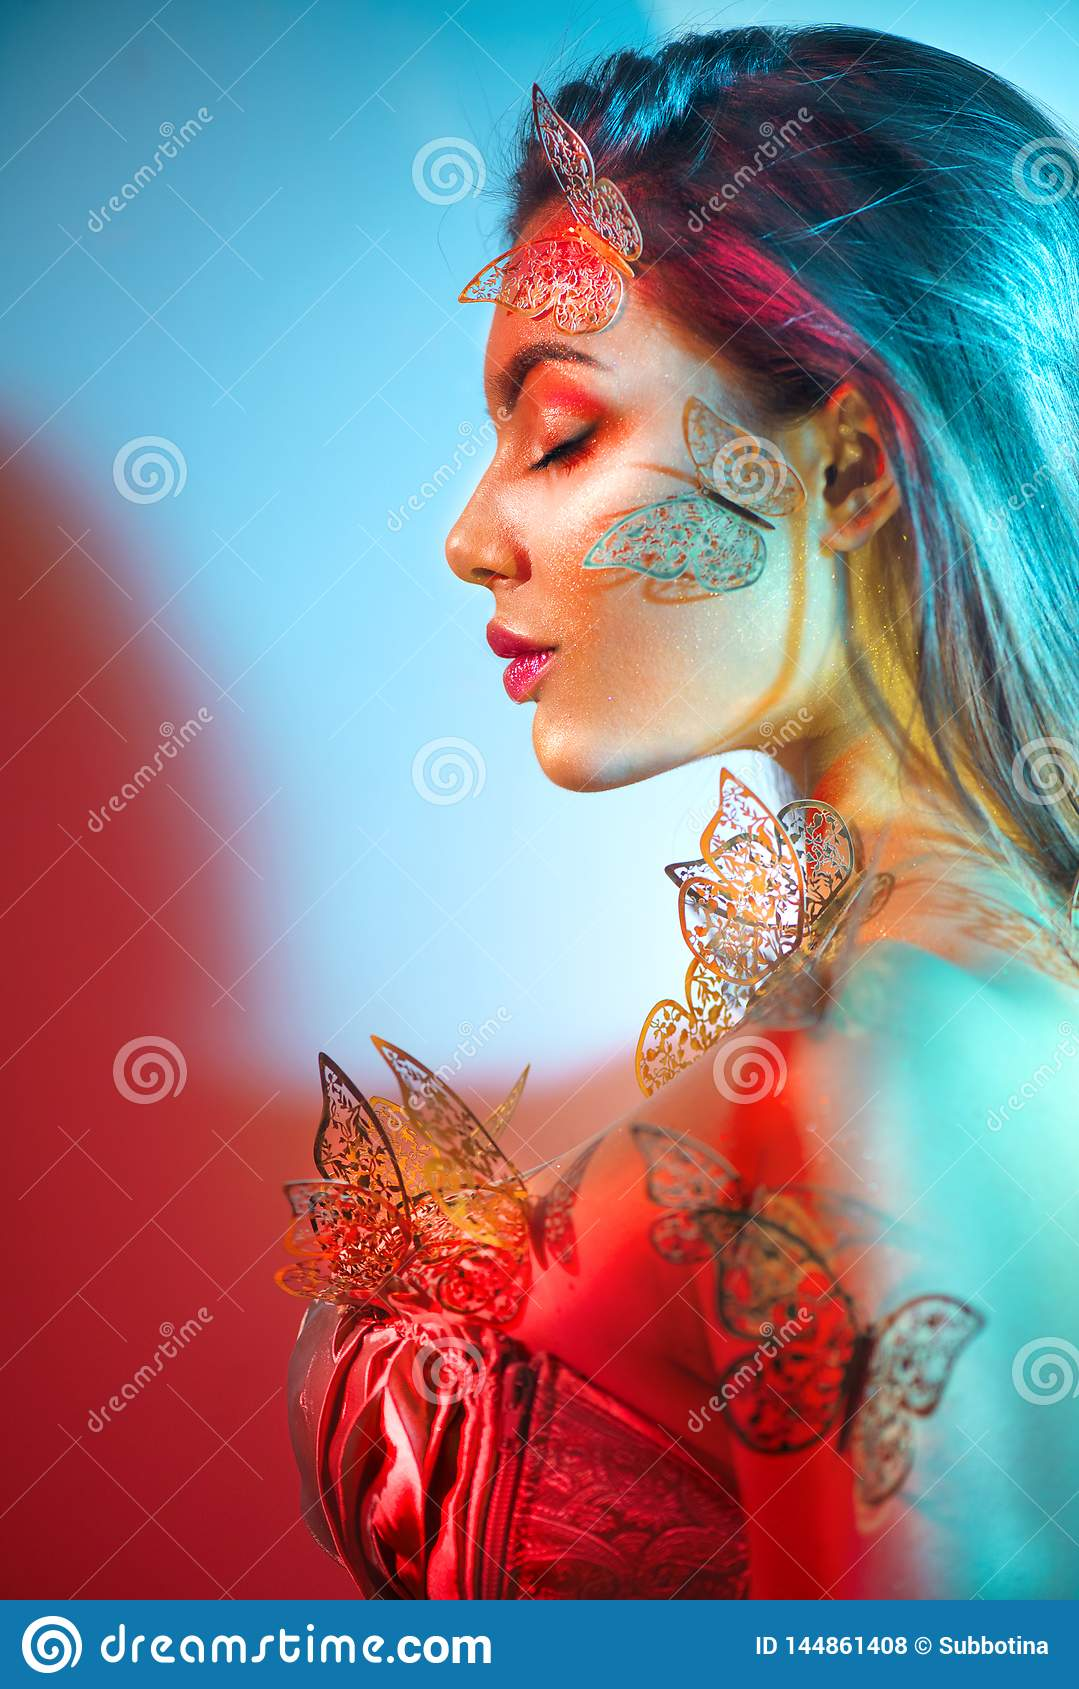 Beauty fantasy model spring girl in colorful bright neon lights. Portrait of beautiful summer young woman in UV. Art design